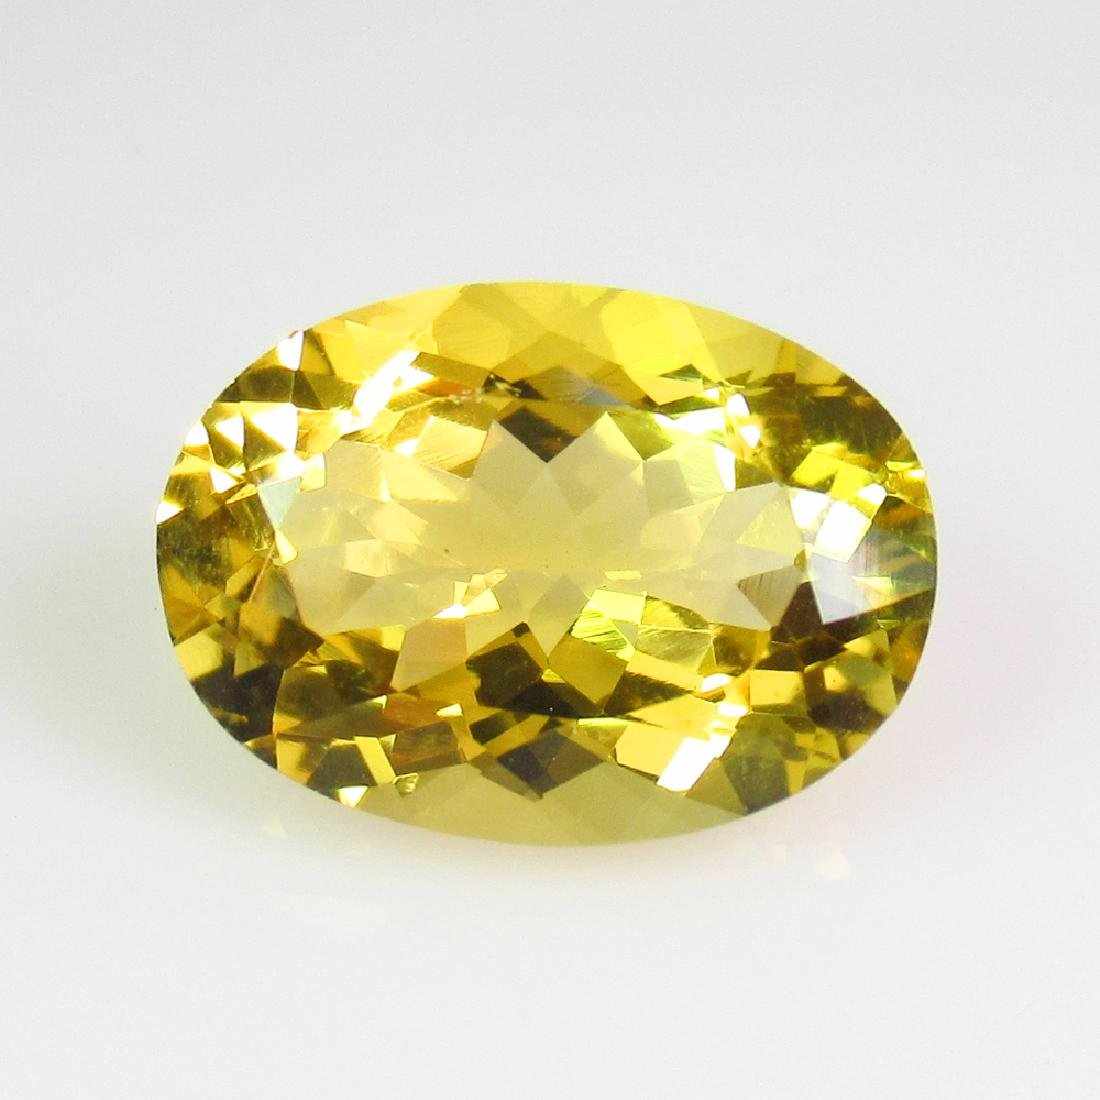 5.69 Ct Genuine Madeira Citrine 14X10 mm Oval Cut